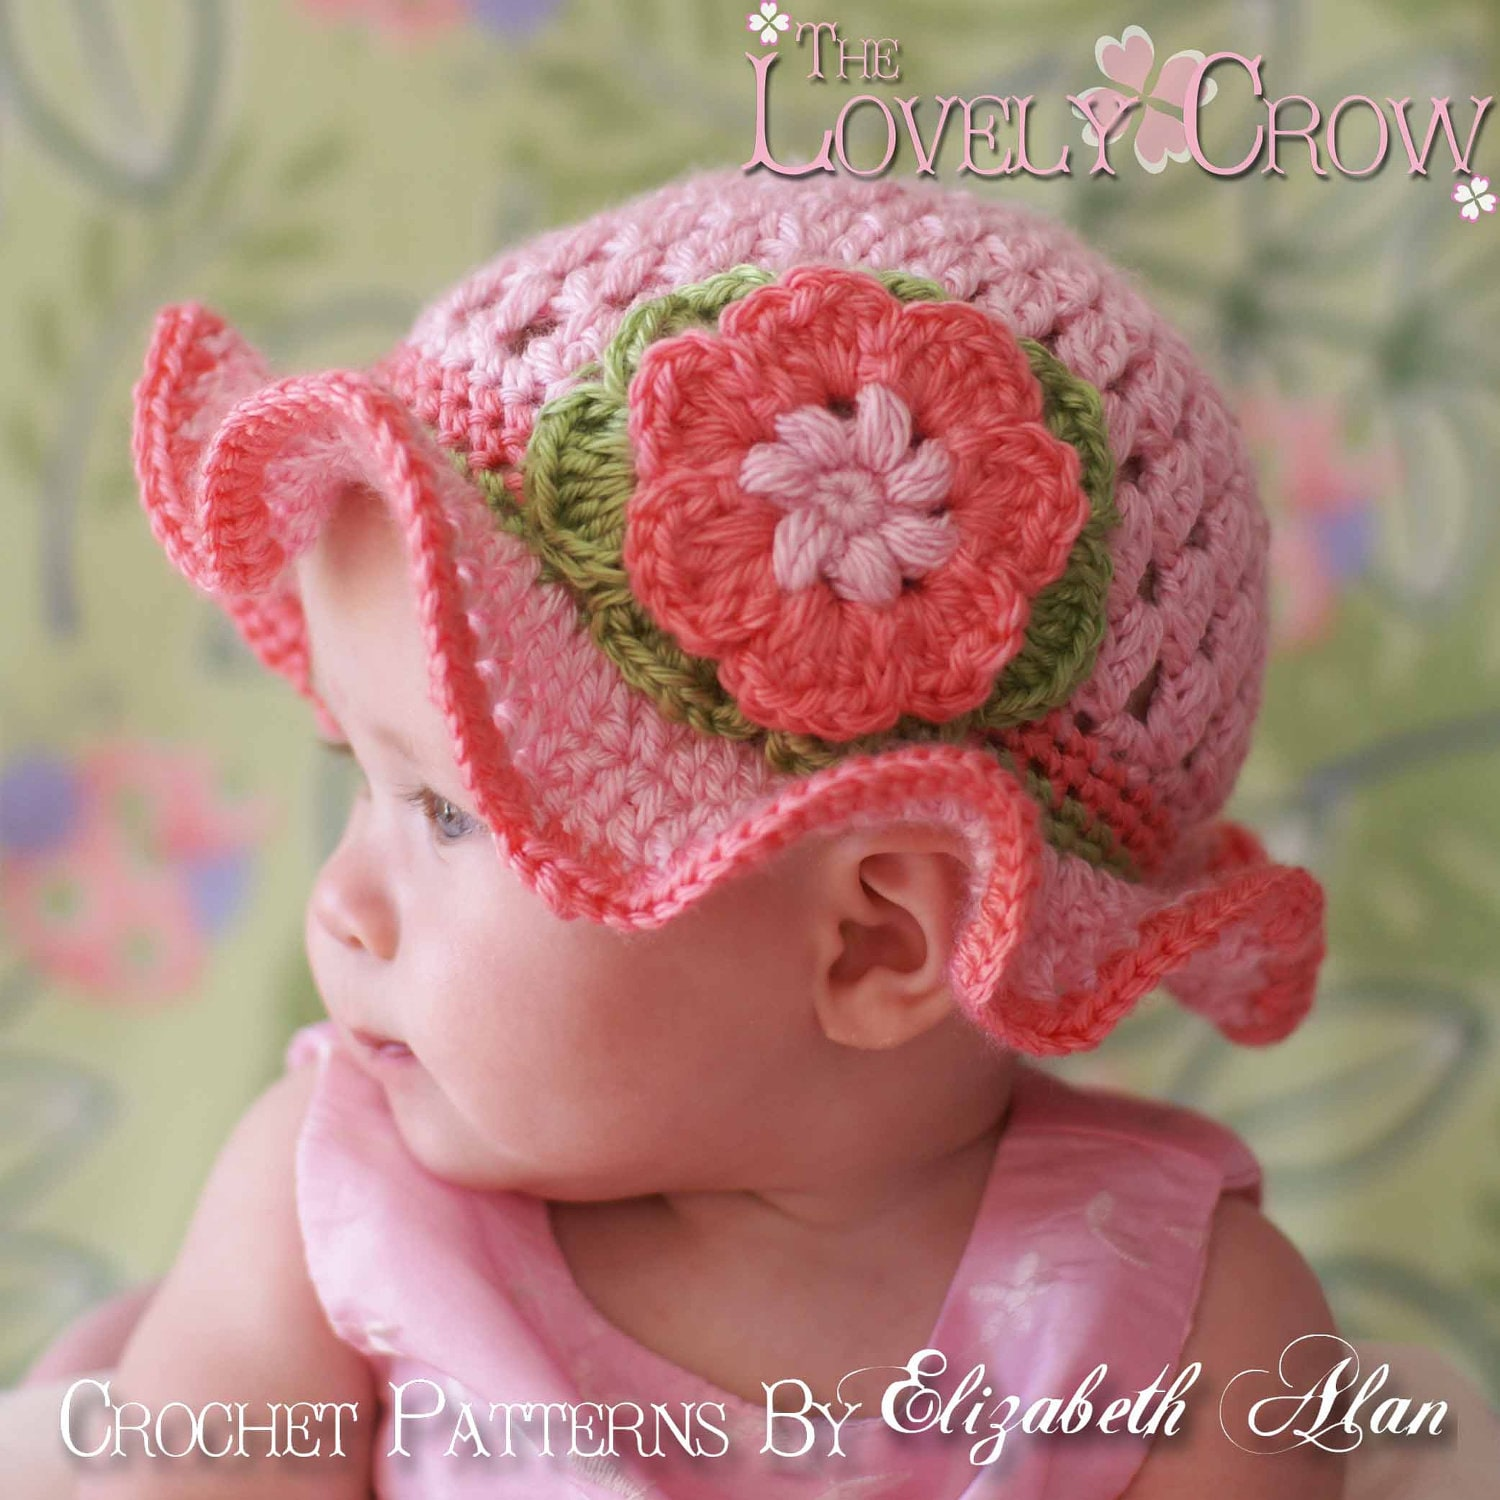 Free Crochet Pattern For Baby Floppy Hats : Gallery For > Crochet Baby Girl Hats Free Patterns